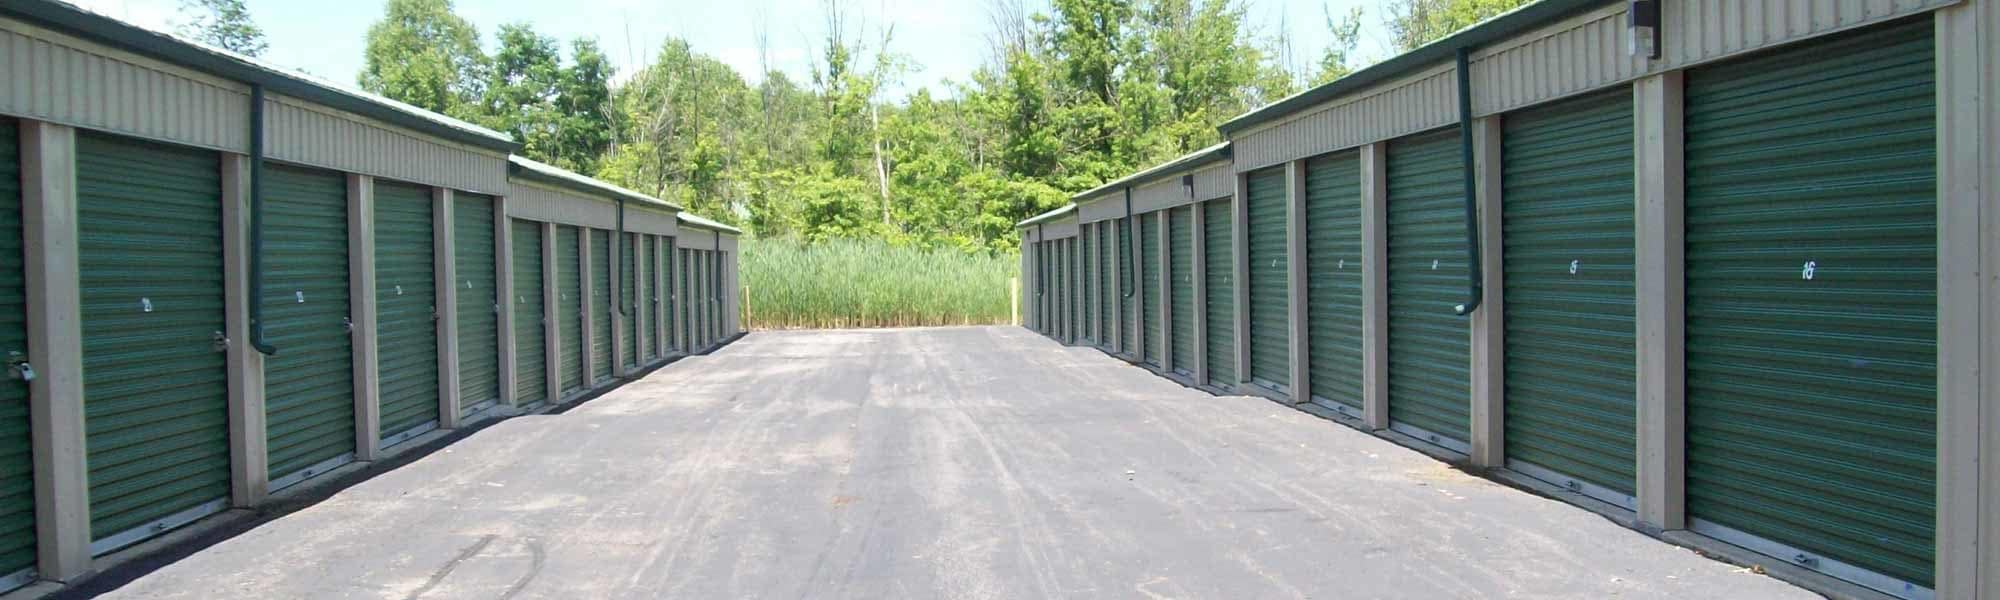 Self storage in Michigan City IN